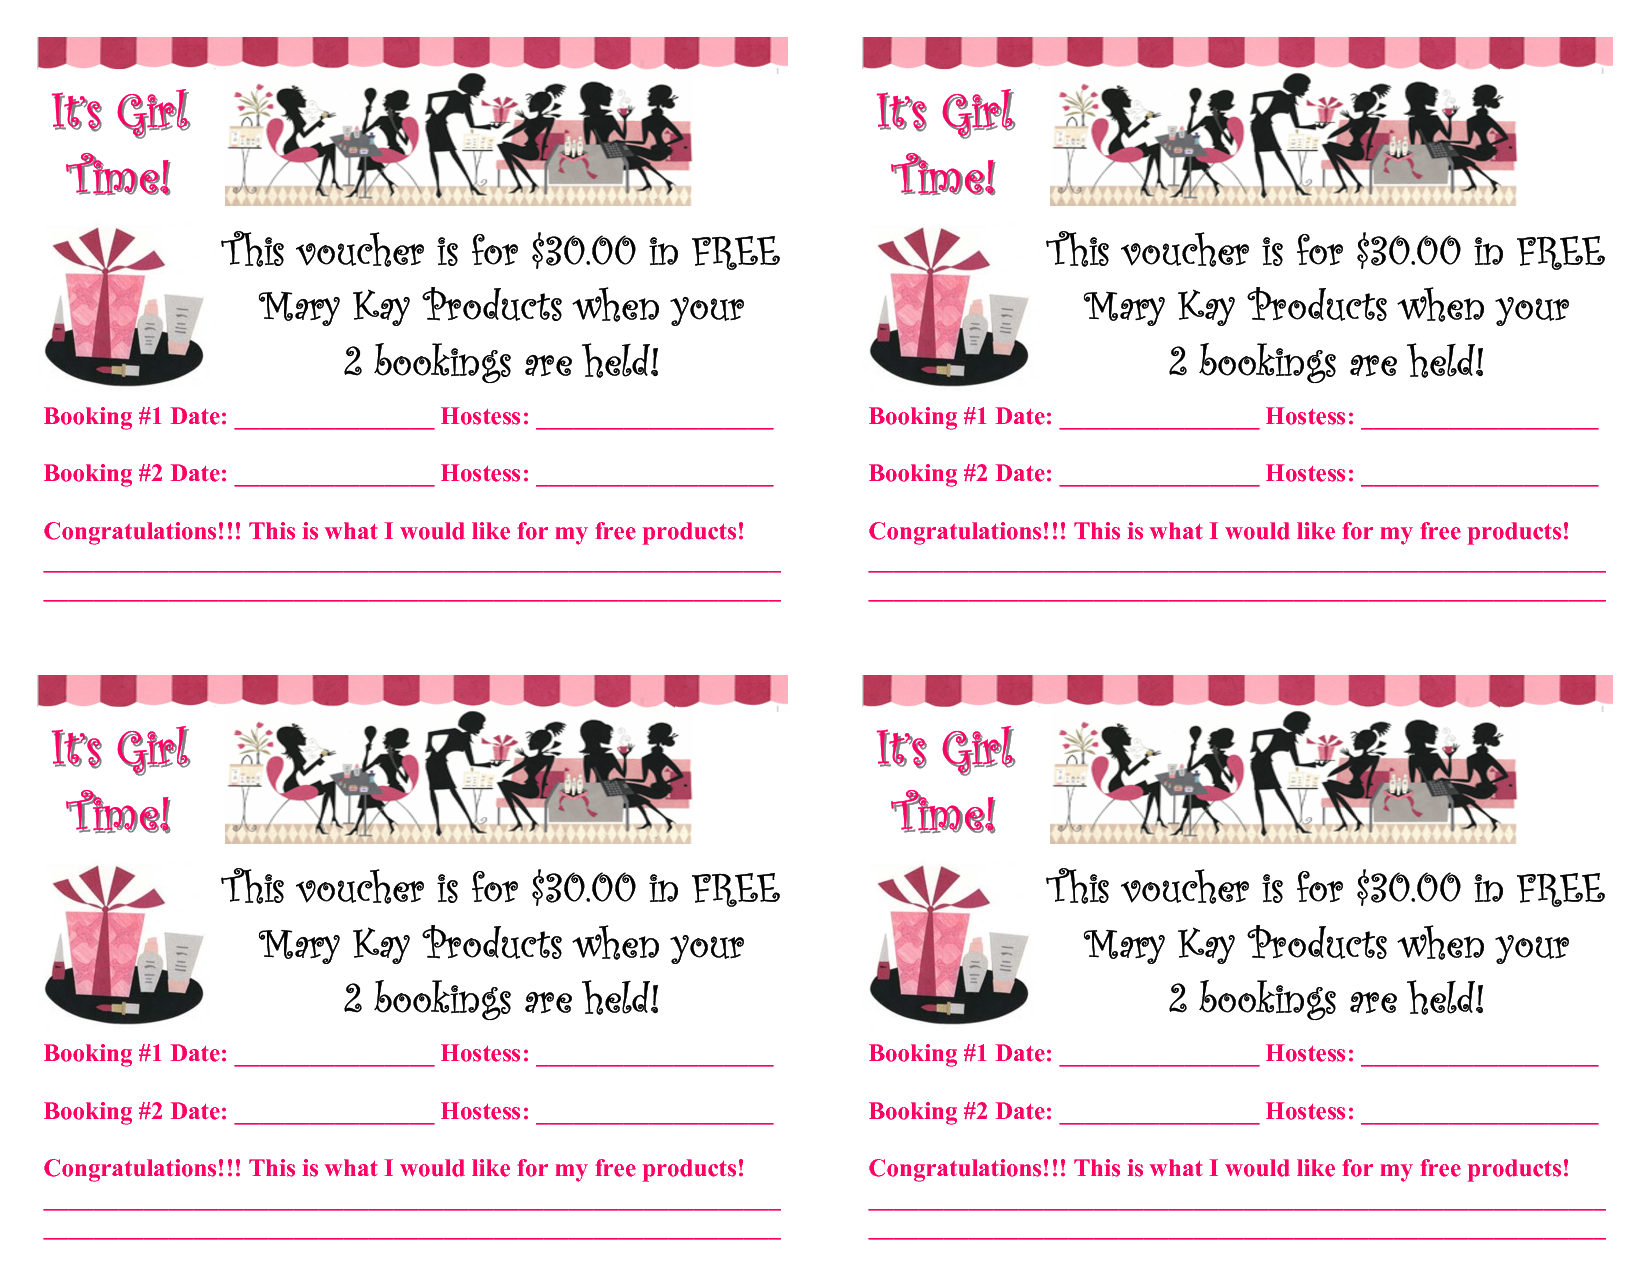 Mary kay flyers templates business pinterest mary for Mary kay invite templates